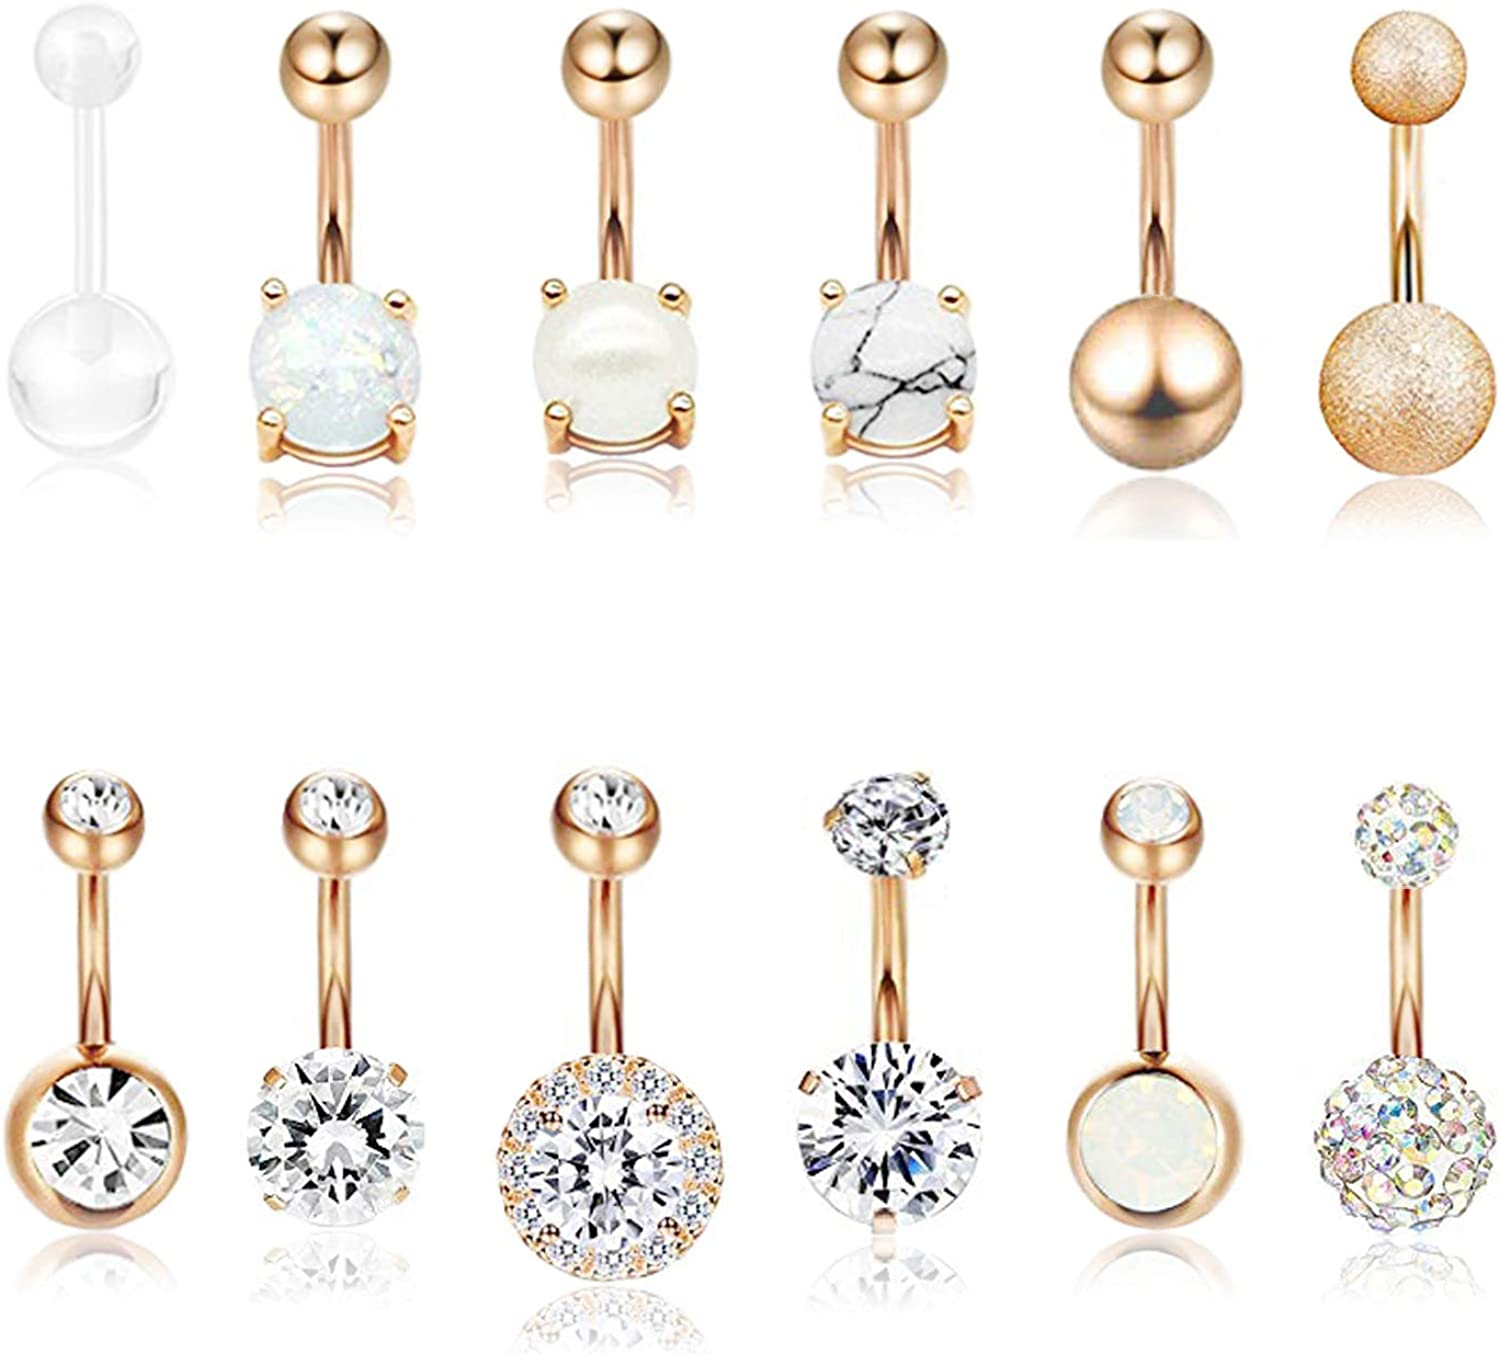 Masedy 12Pcs Belly Button Rings for Women Girls Surgical Steel Curved Navel Barbell Rings Body Piercing Jewelry